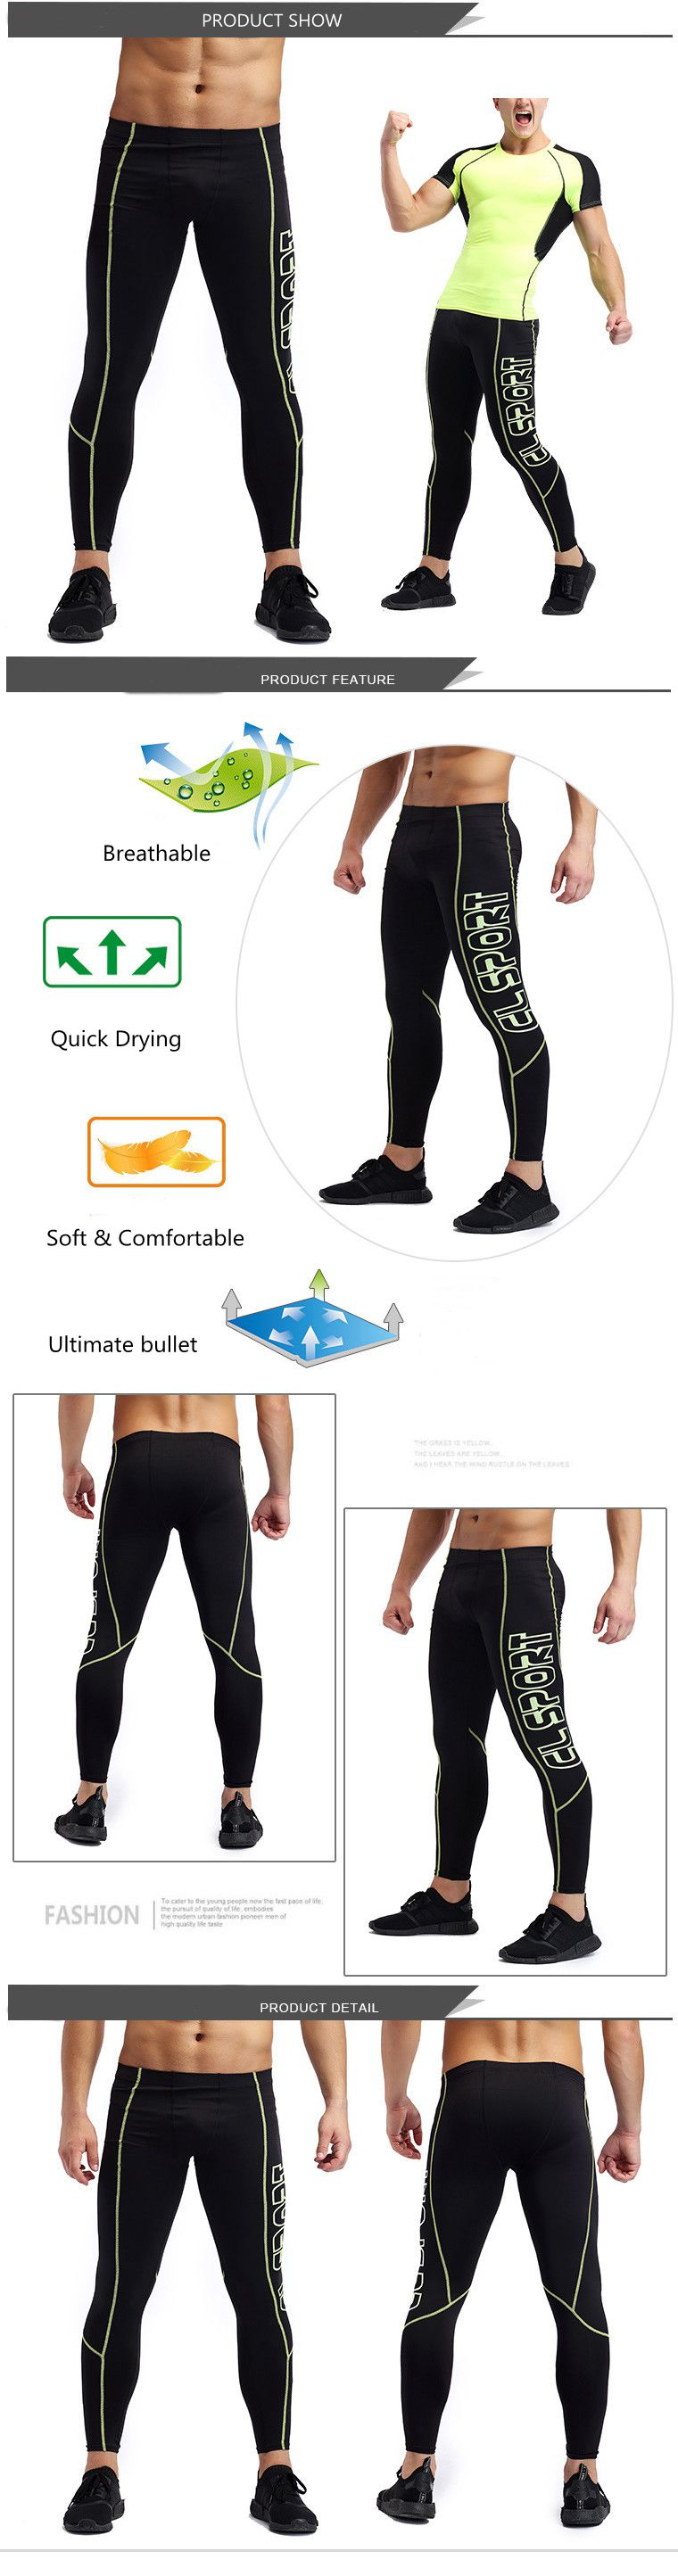 High Comfort Sports Gym Jogging Tight Pants Bodybuilding Breathable Skinny Legging Trousers